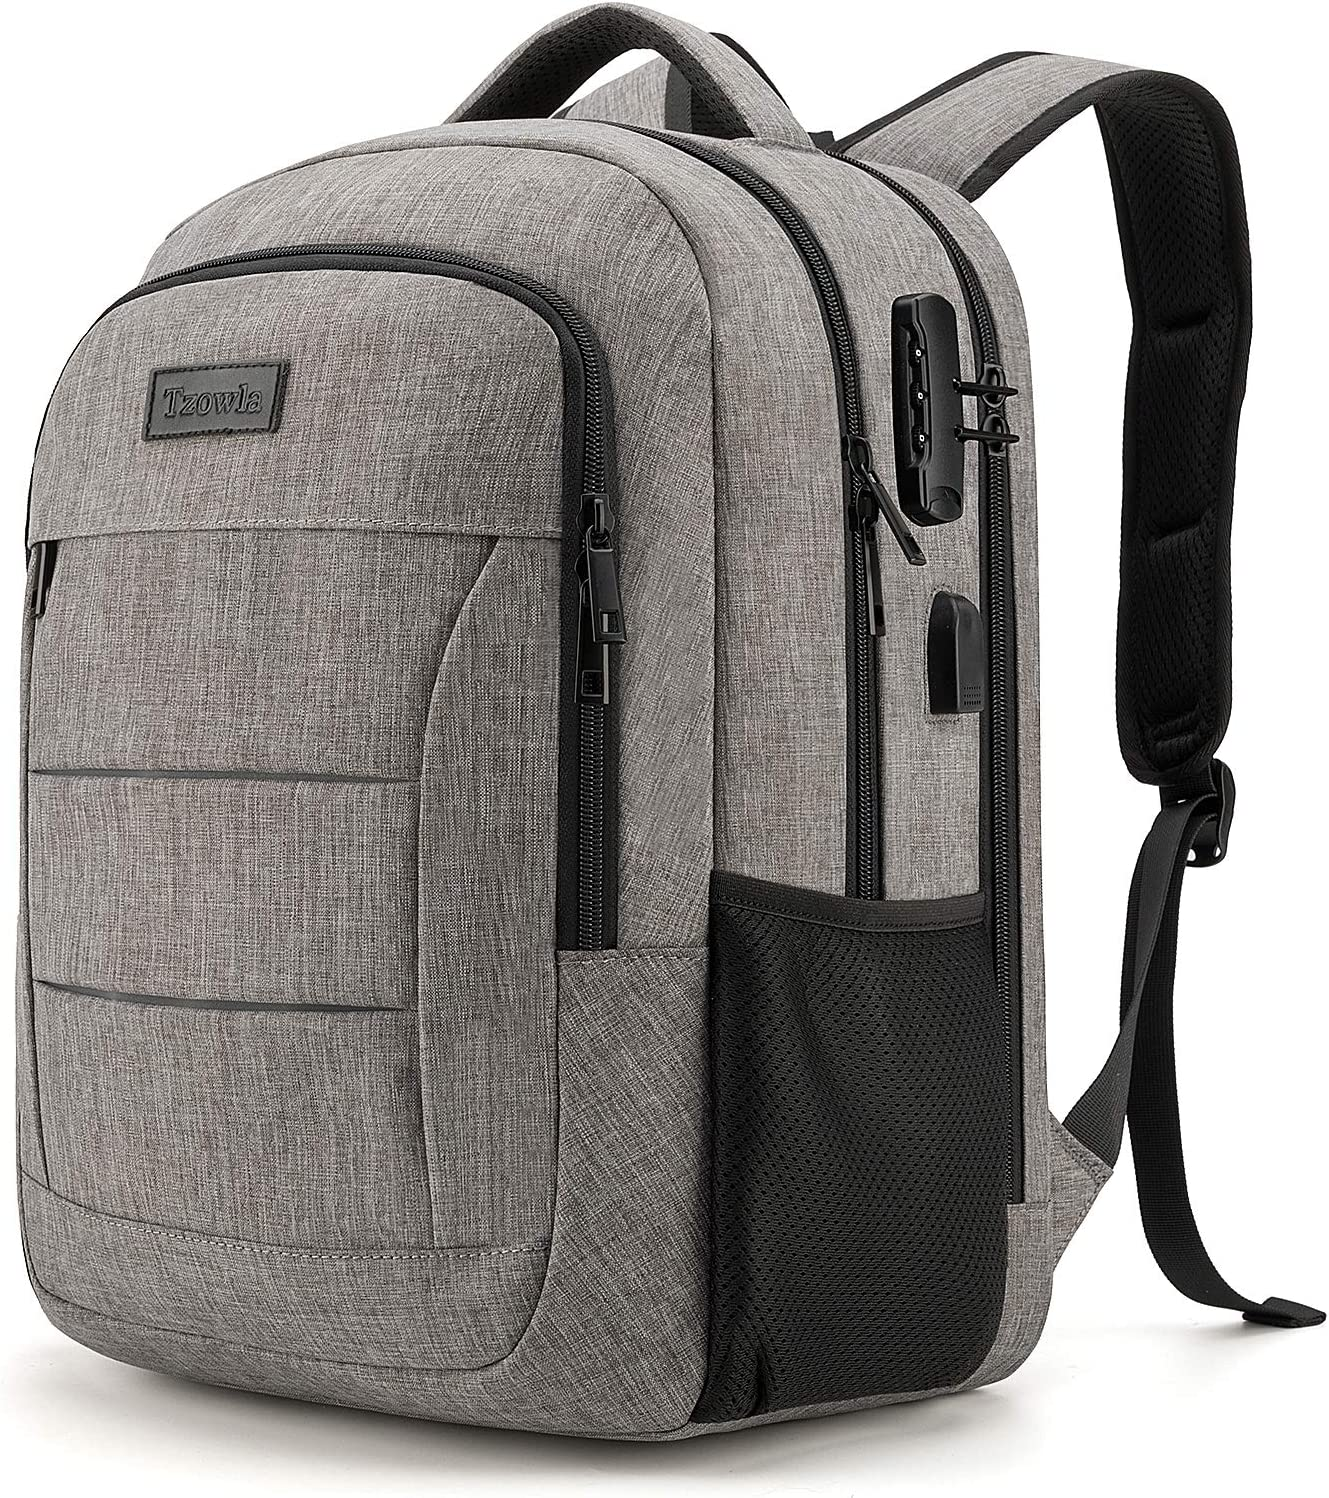 Travel Laptop Backpack Water Resistant Anti-Theft Bag with USB Charging Port and Lock 17.3 Inch Computer Business Backpacks for Women Men College School Student Gift,Bookbag Casual Hiking Daypack